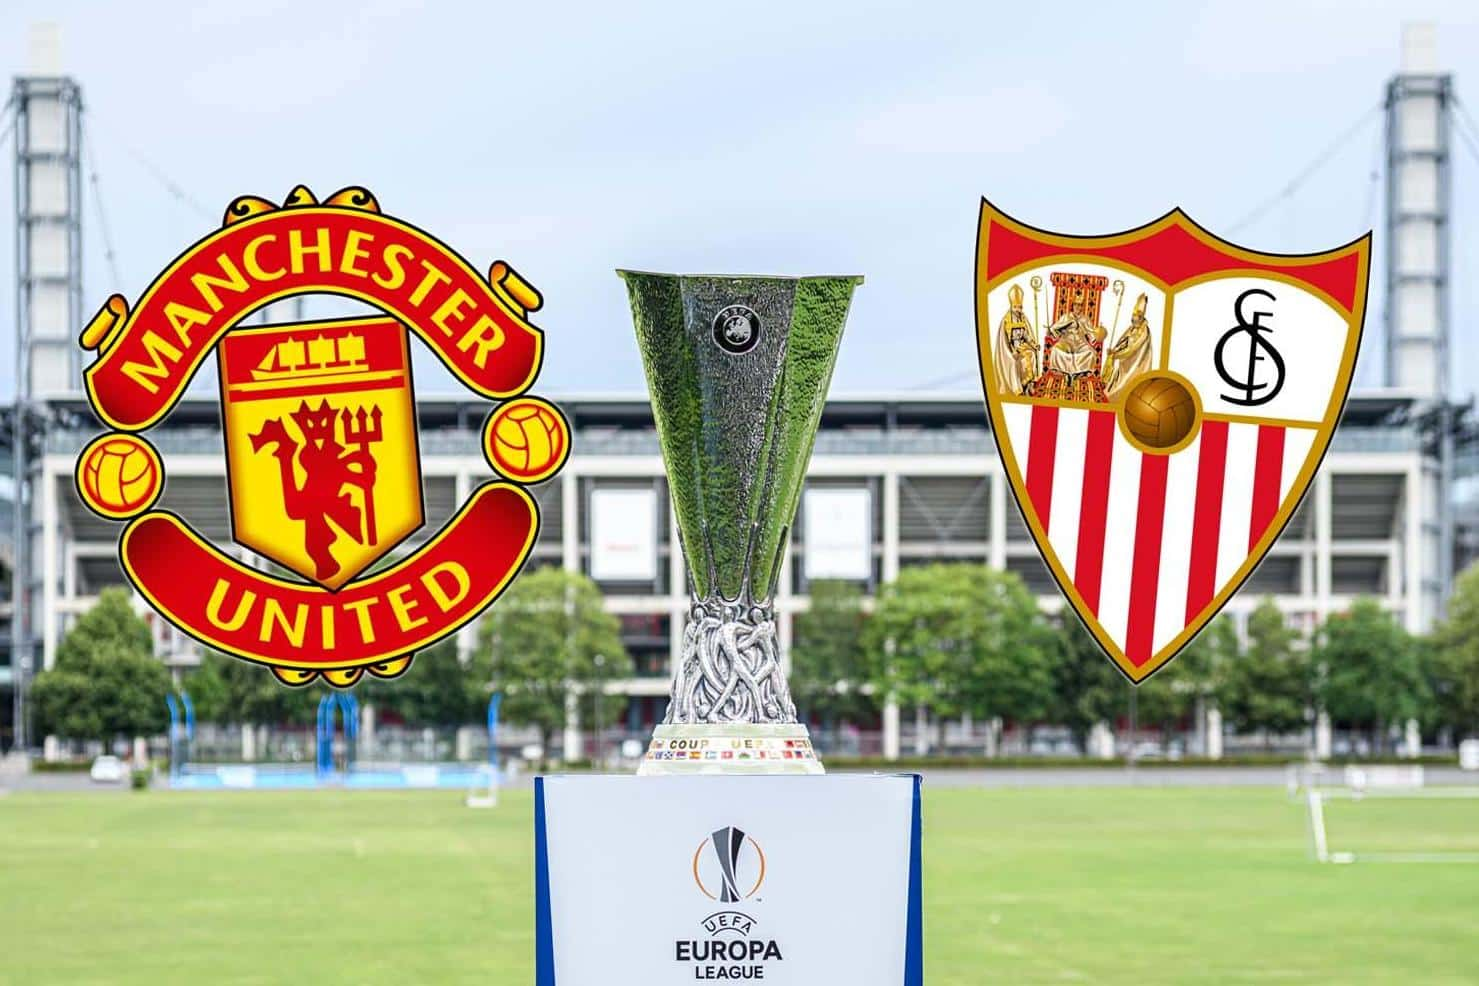 Manchester United vs Sevilla – 08/16/20 – Europa League Odds, Preview & Prediction